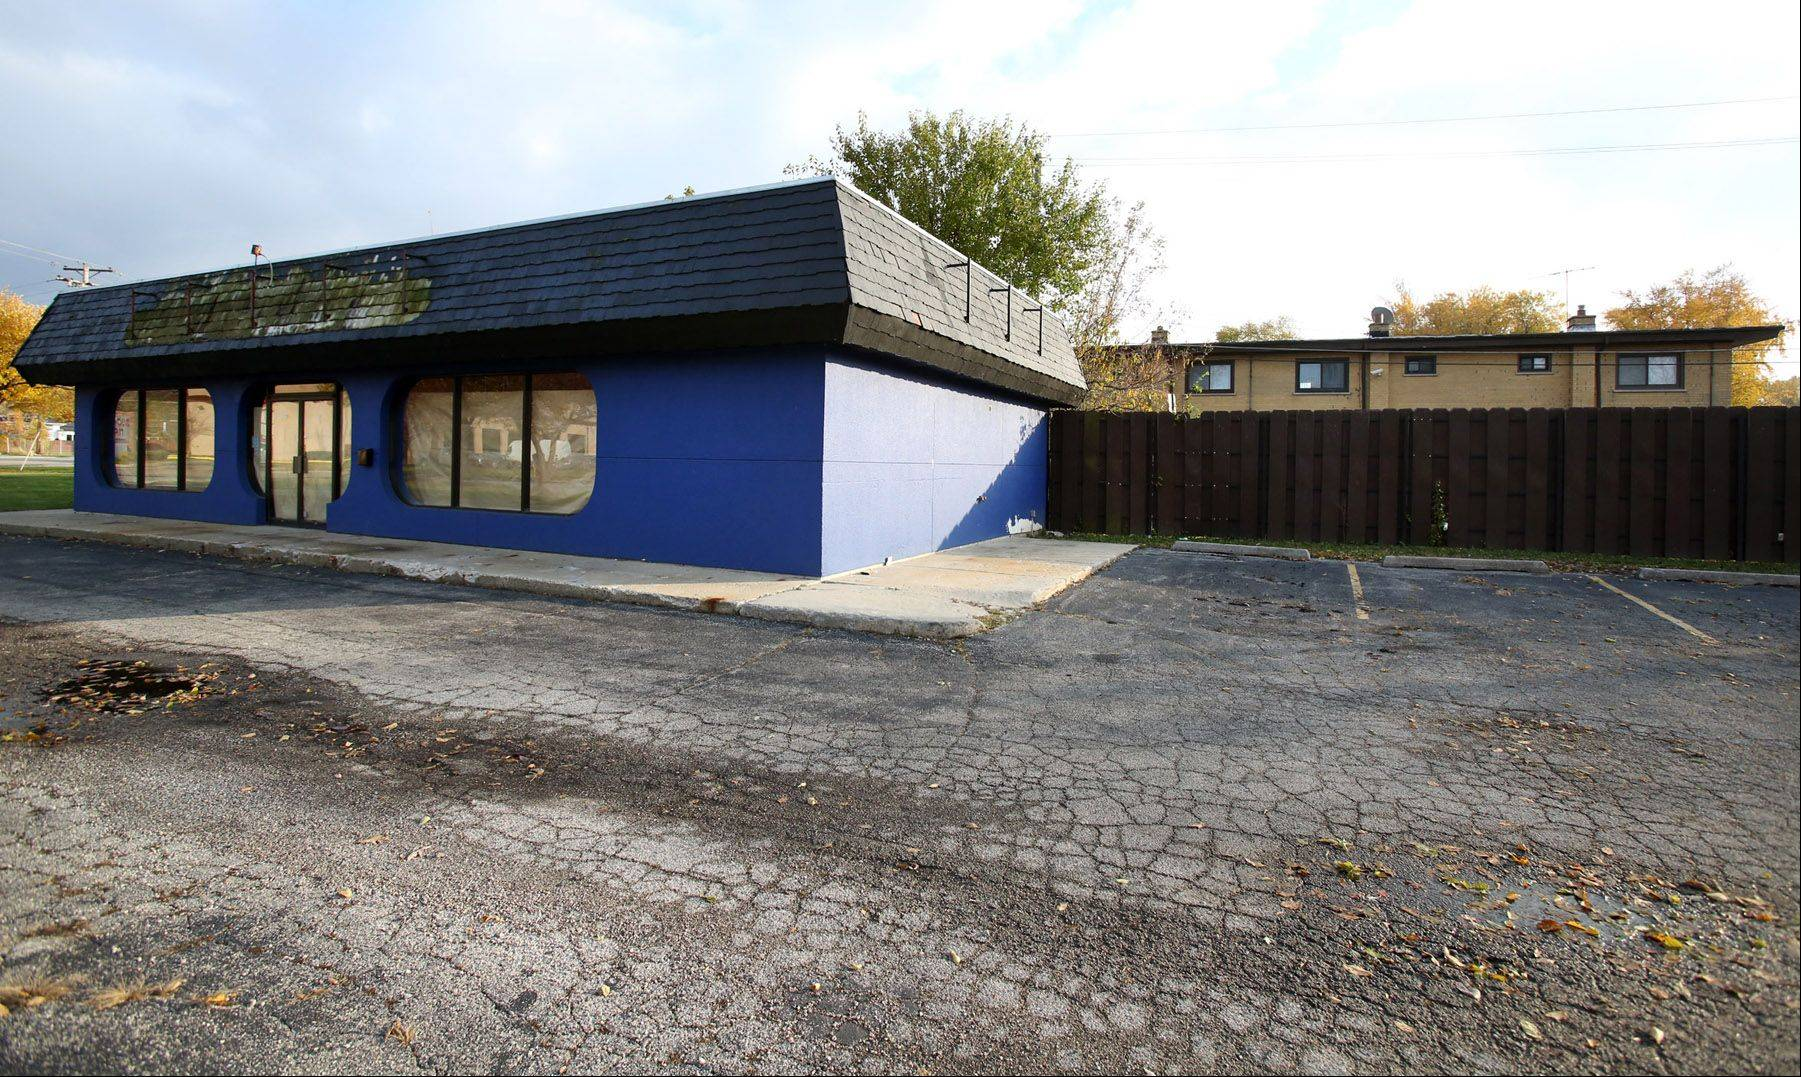 Mount Prospect agreed to rezone this site at 211 E. Rand Road, near apartments on right, to allow opening of a cigar lounge.